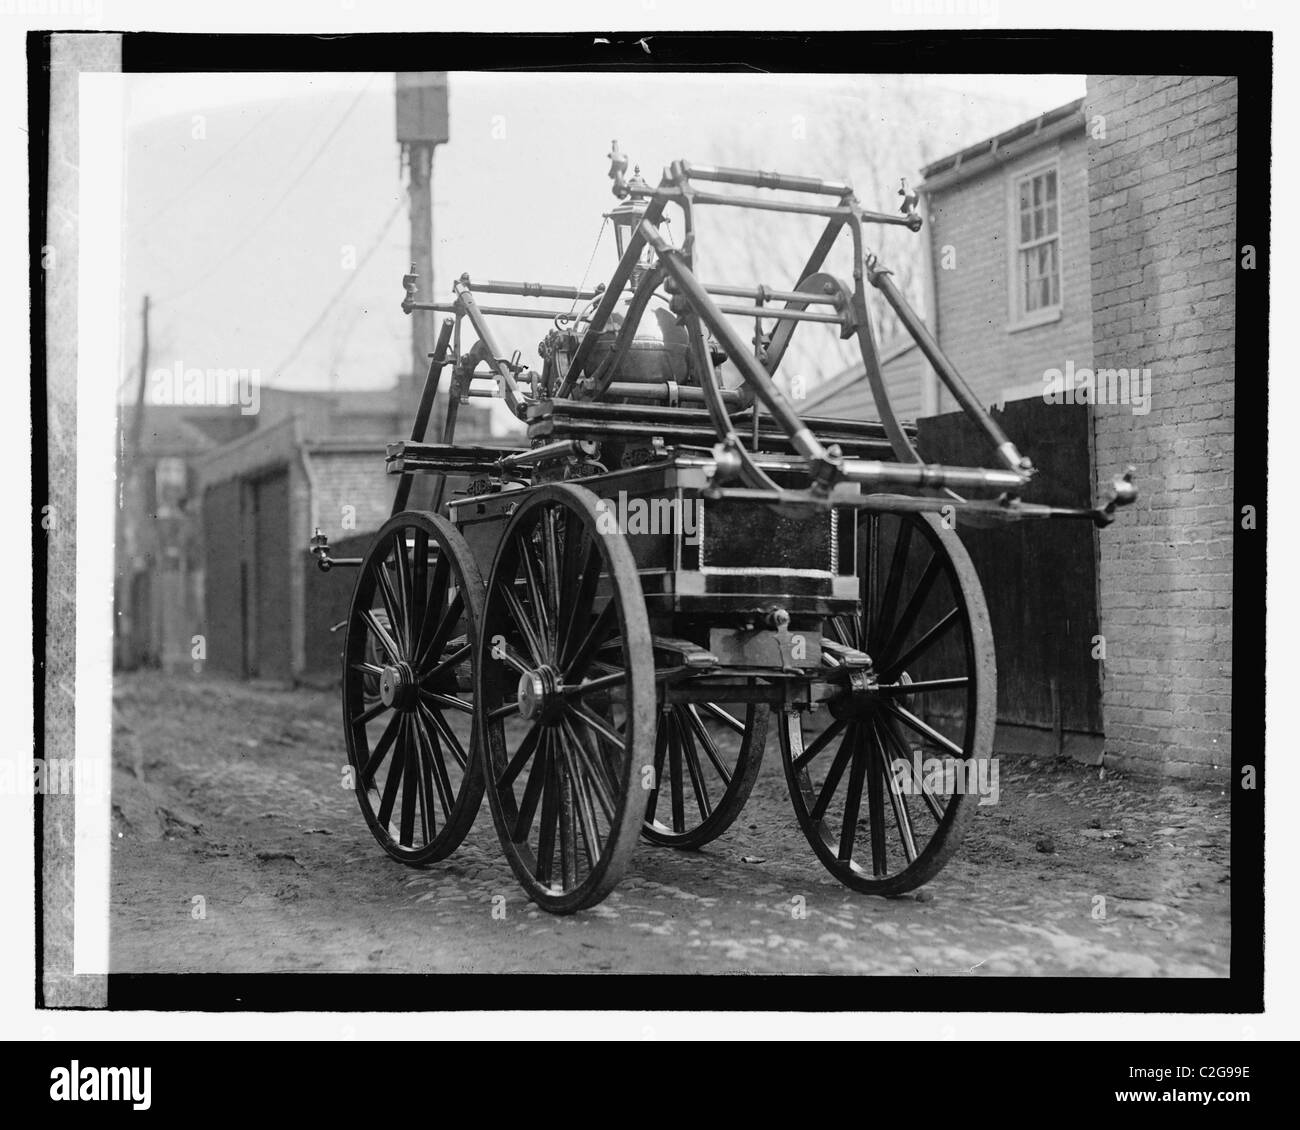 BABCOCK SELF-ACTING FIRE-ENGINE STEAM FIRE ENGINE PROTECTION FOR CITIES /& TOWNS